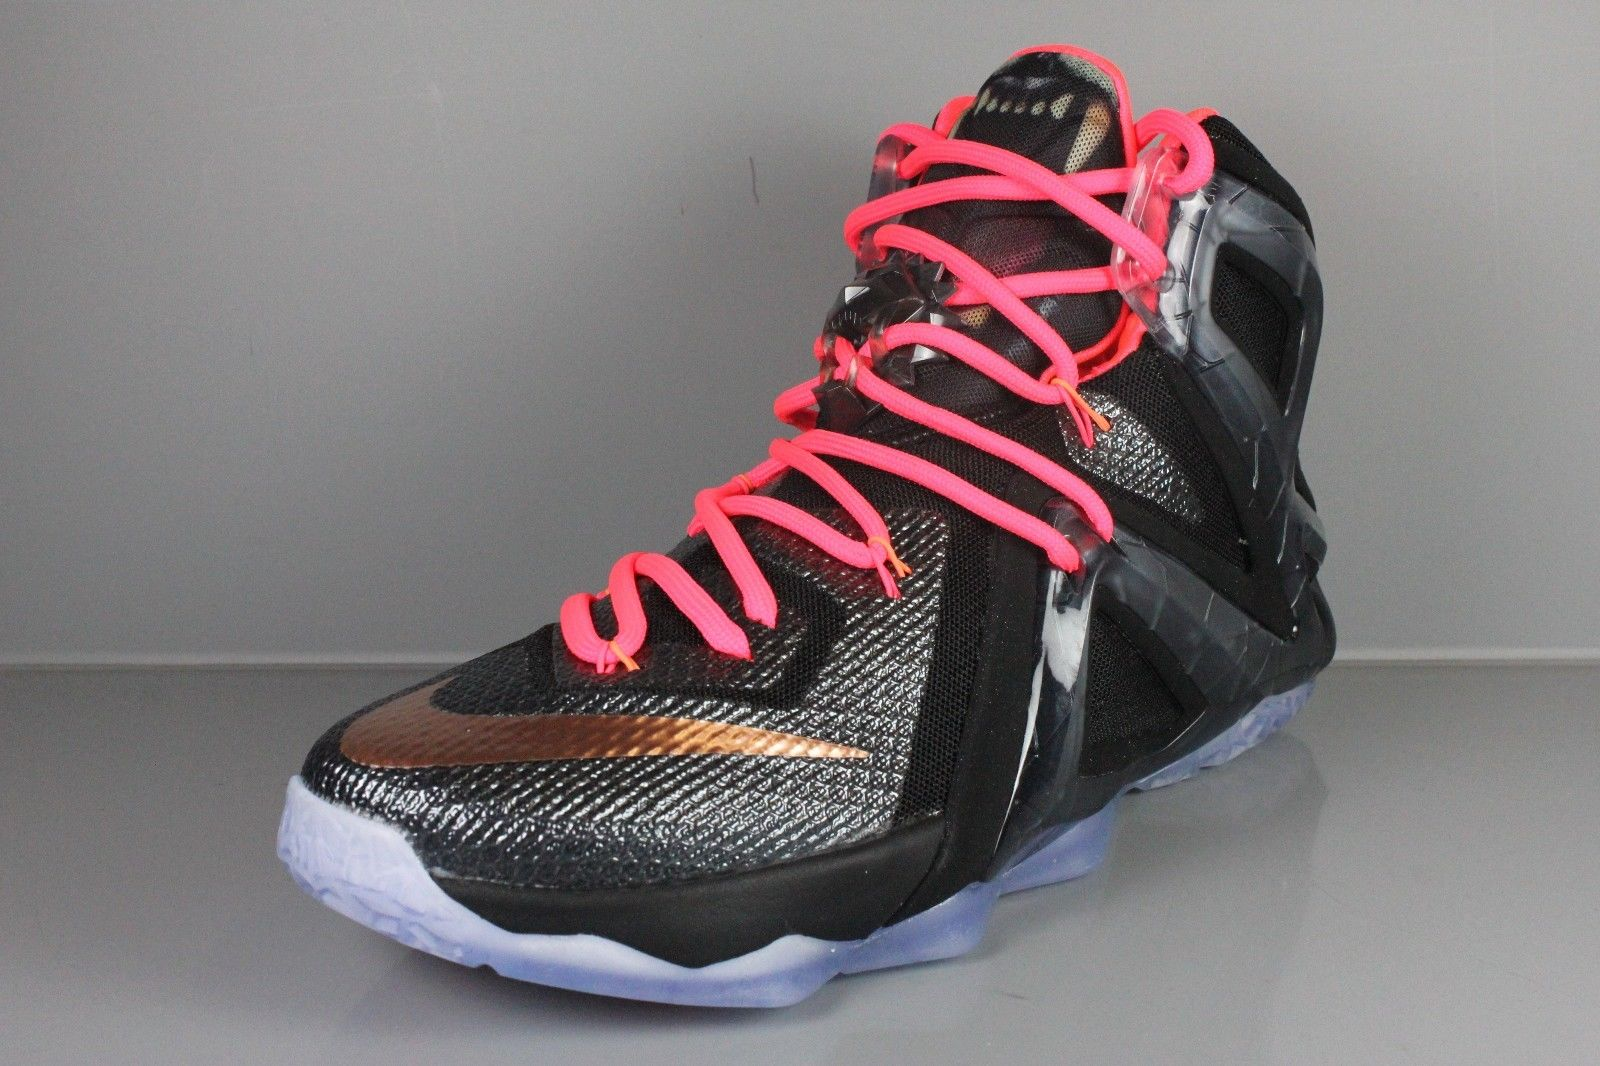 the latest c5e45 19747 Will LeBron James Ever Wear This Nike LeBron 12 Elite